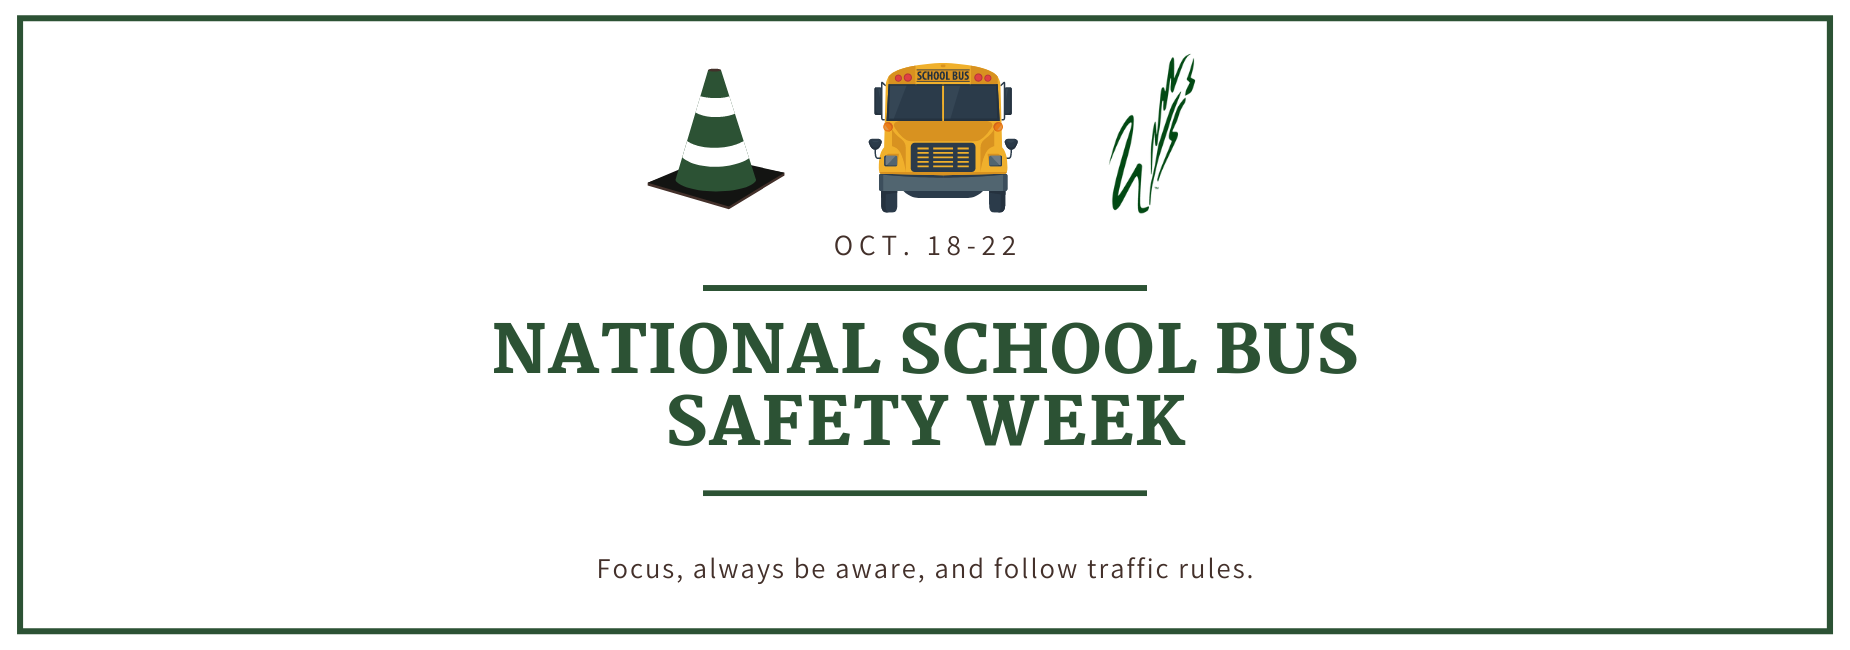 graphic describes this is national school bus safety week